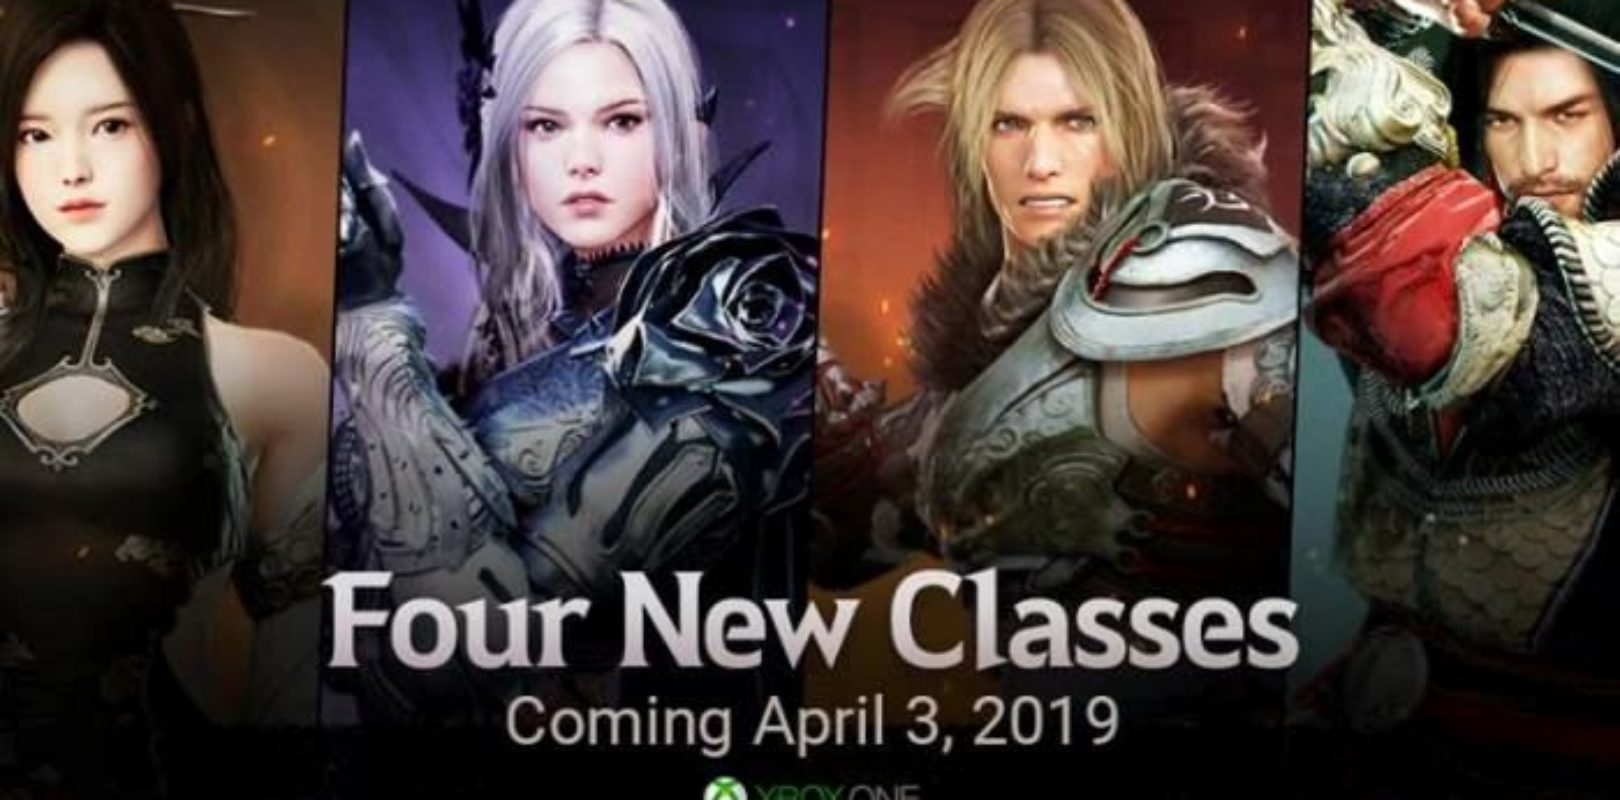 Black Desert Online - 03 04 2019 Patch Notes | OUT OF THE